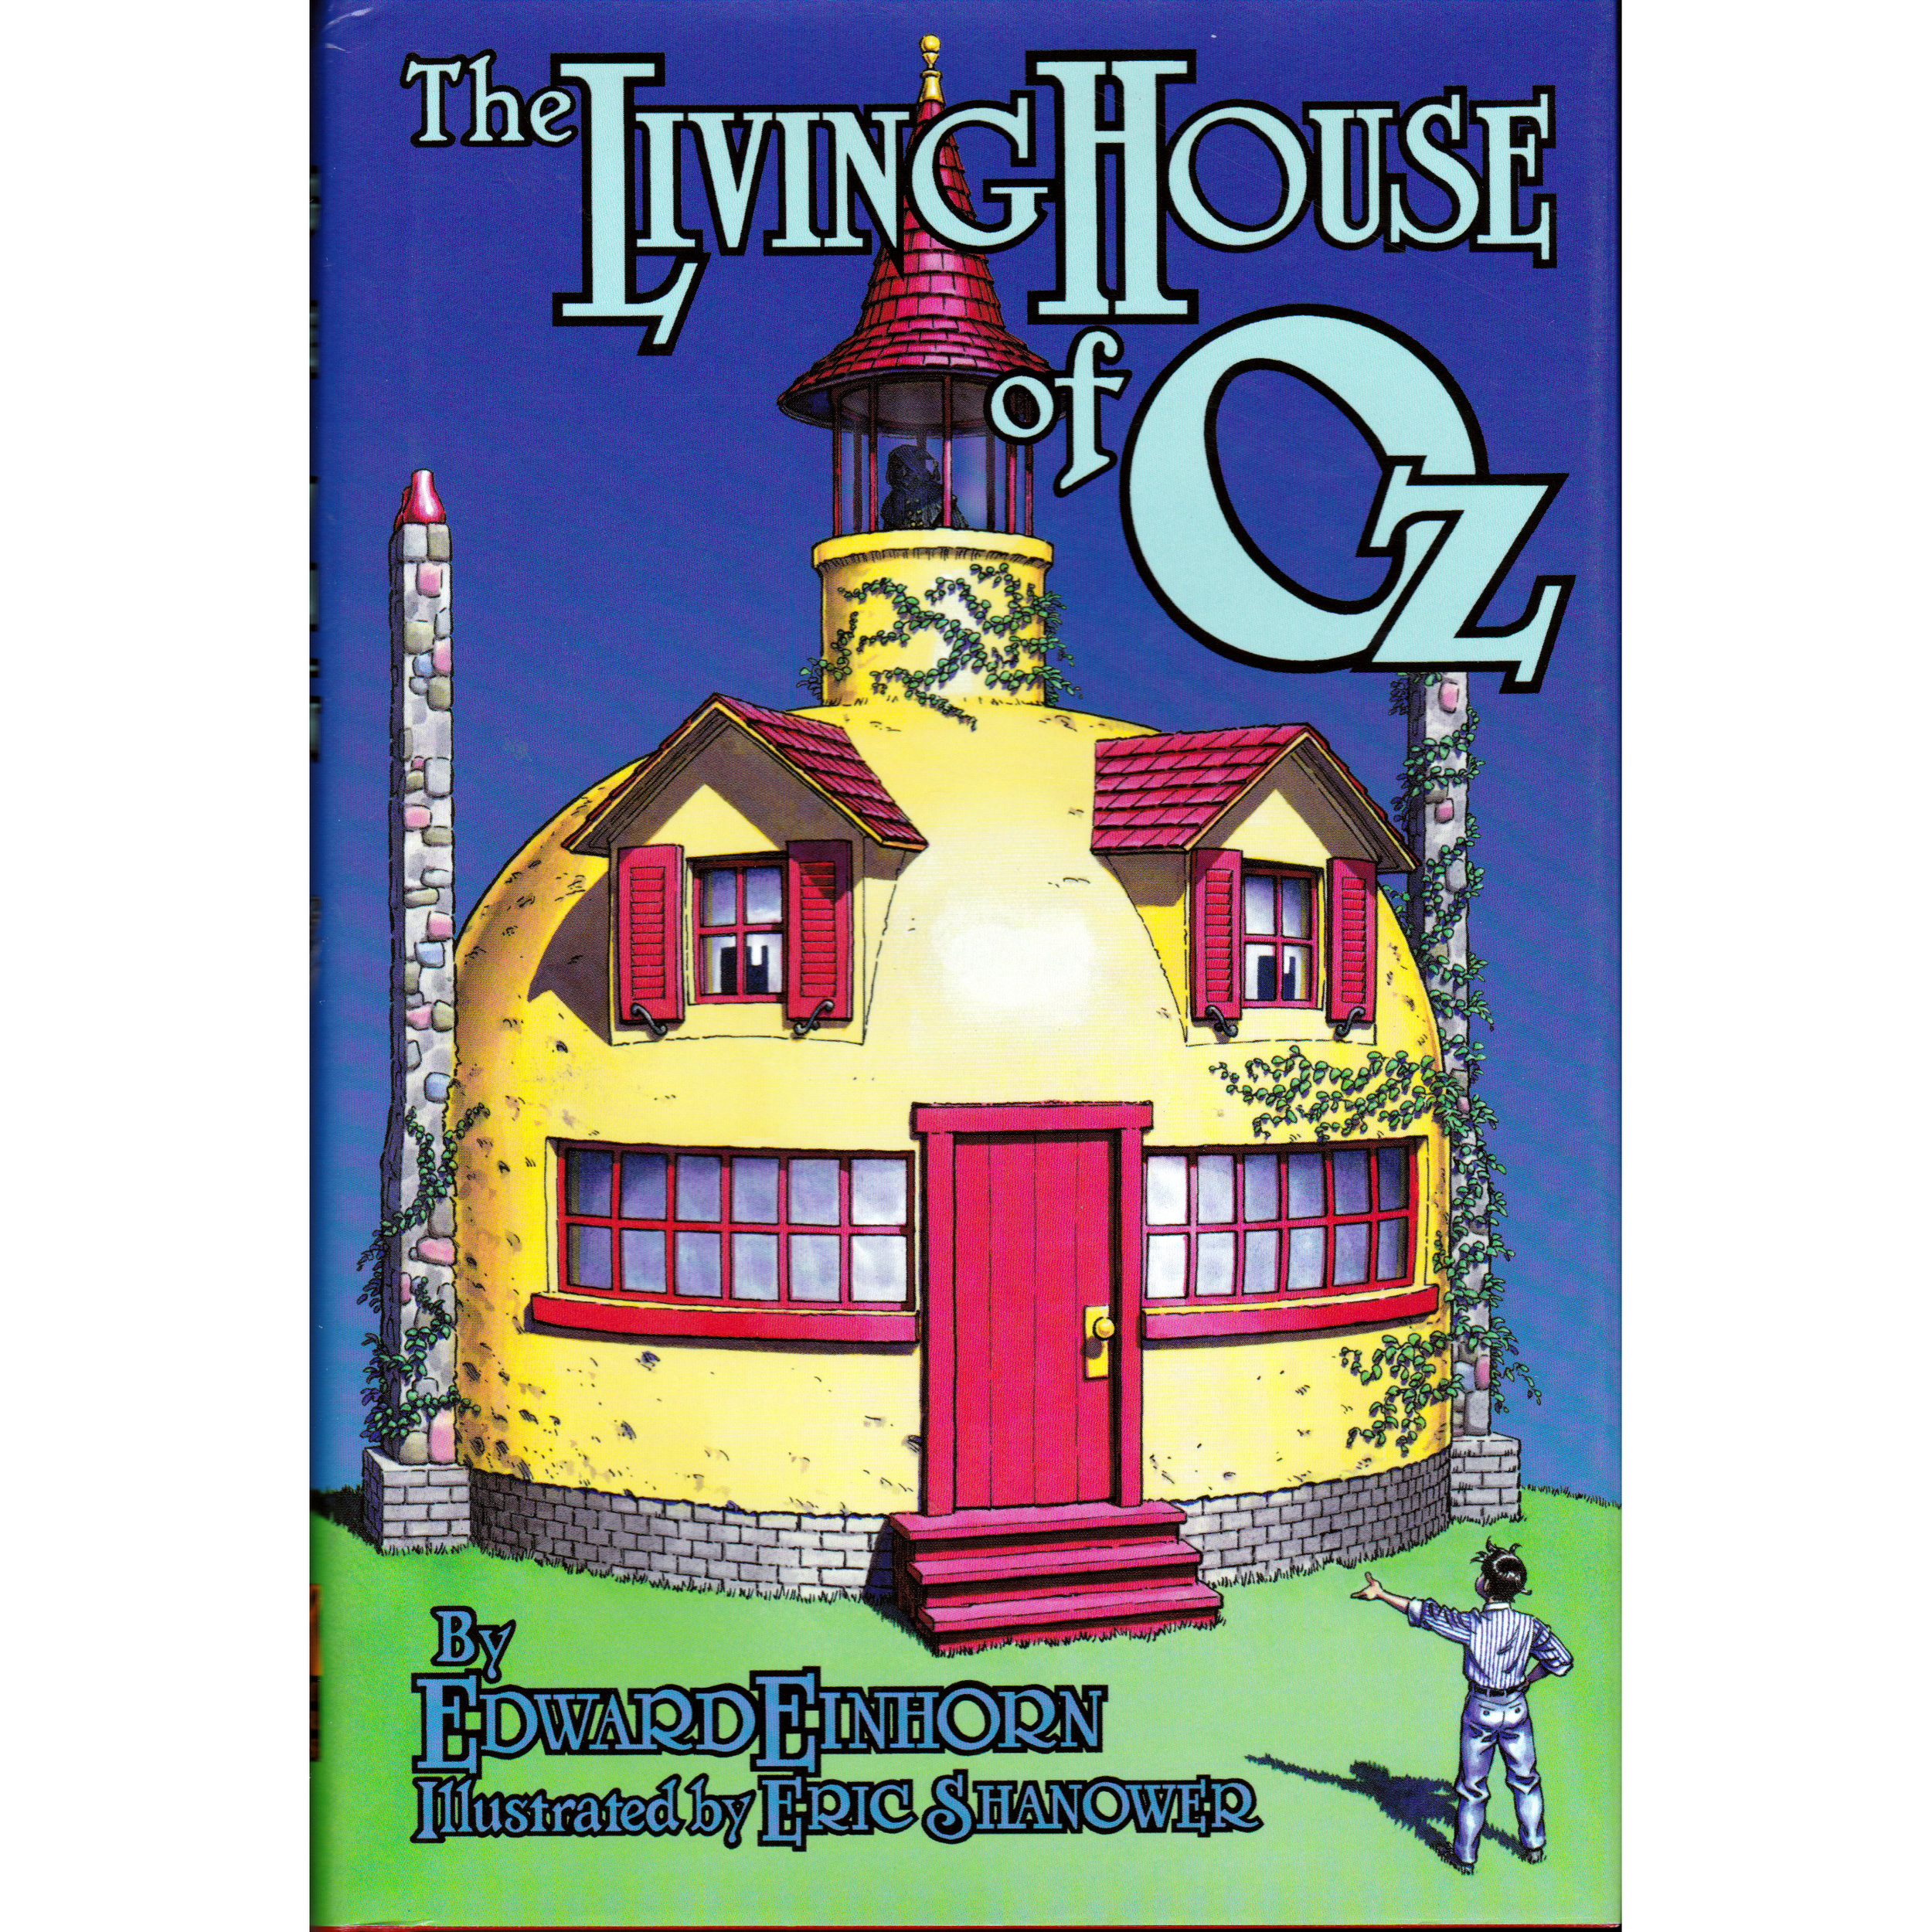 The Living House of Oz - ILLEGAL MAGIC IN OZ! What do you do when your mother is arrested for practicing witchcraft? For thirteen-year-old Buddy the answer is easy—he's off to rescue her from imprisonment in the Emerald City of Oz! With help from friends such as the living hat stand that calls itself the Earl of Haberdashery, Buddy finds he must challenge the Wizard of Oz and Glinda the Good, the most powerful magic-workers in Oz. Illustrated by Eric Shanower.